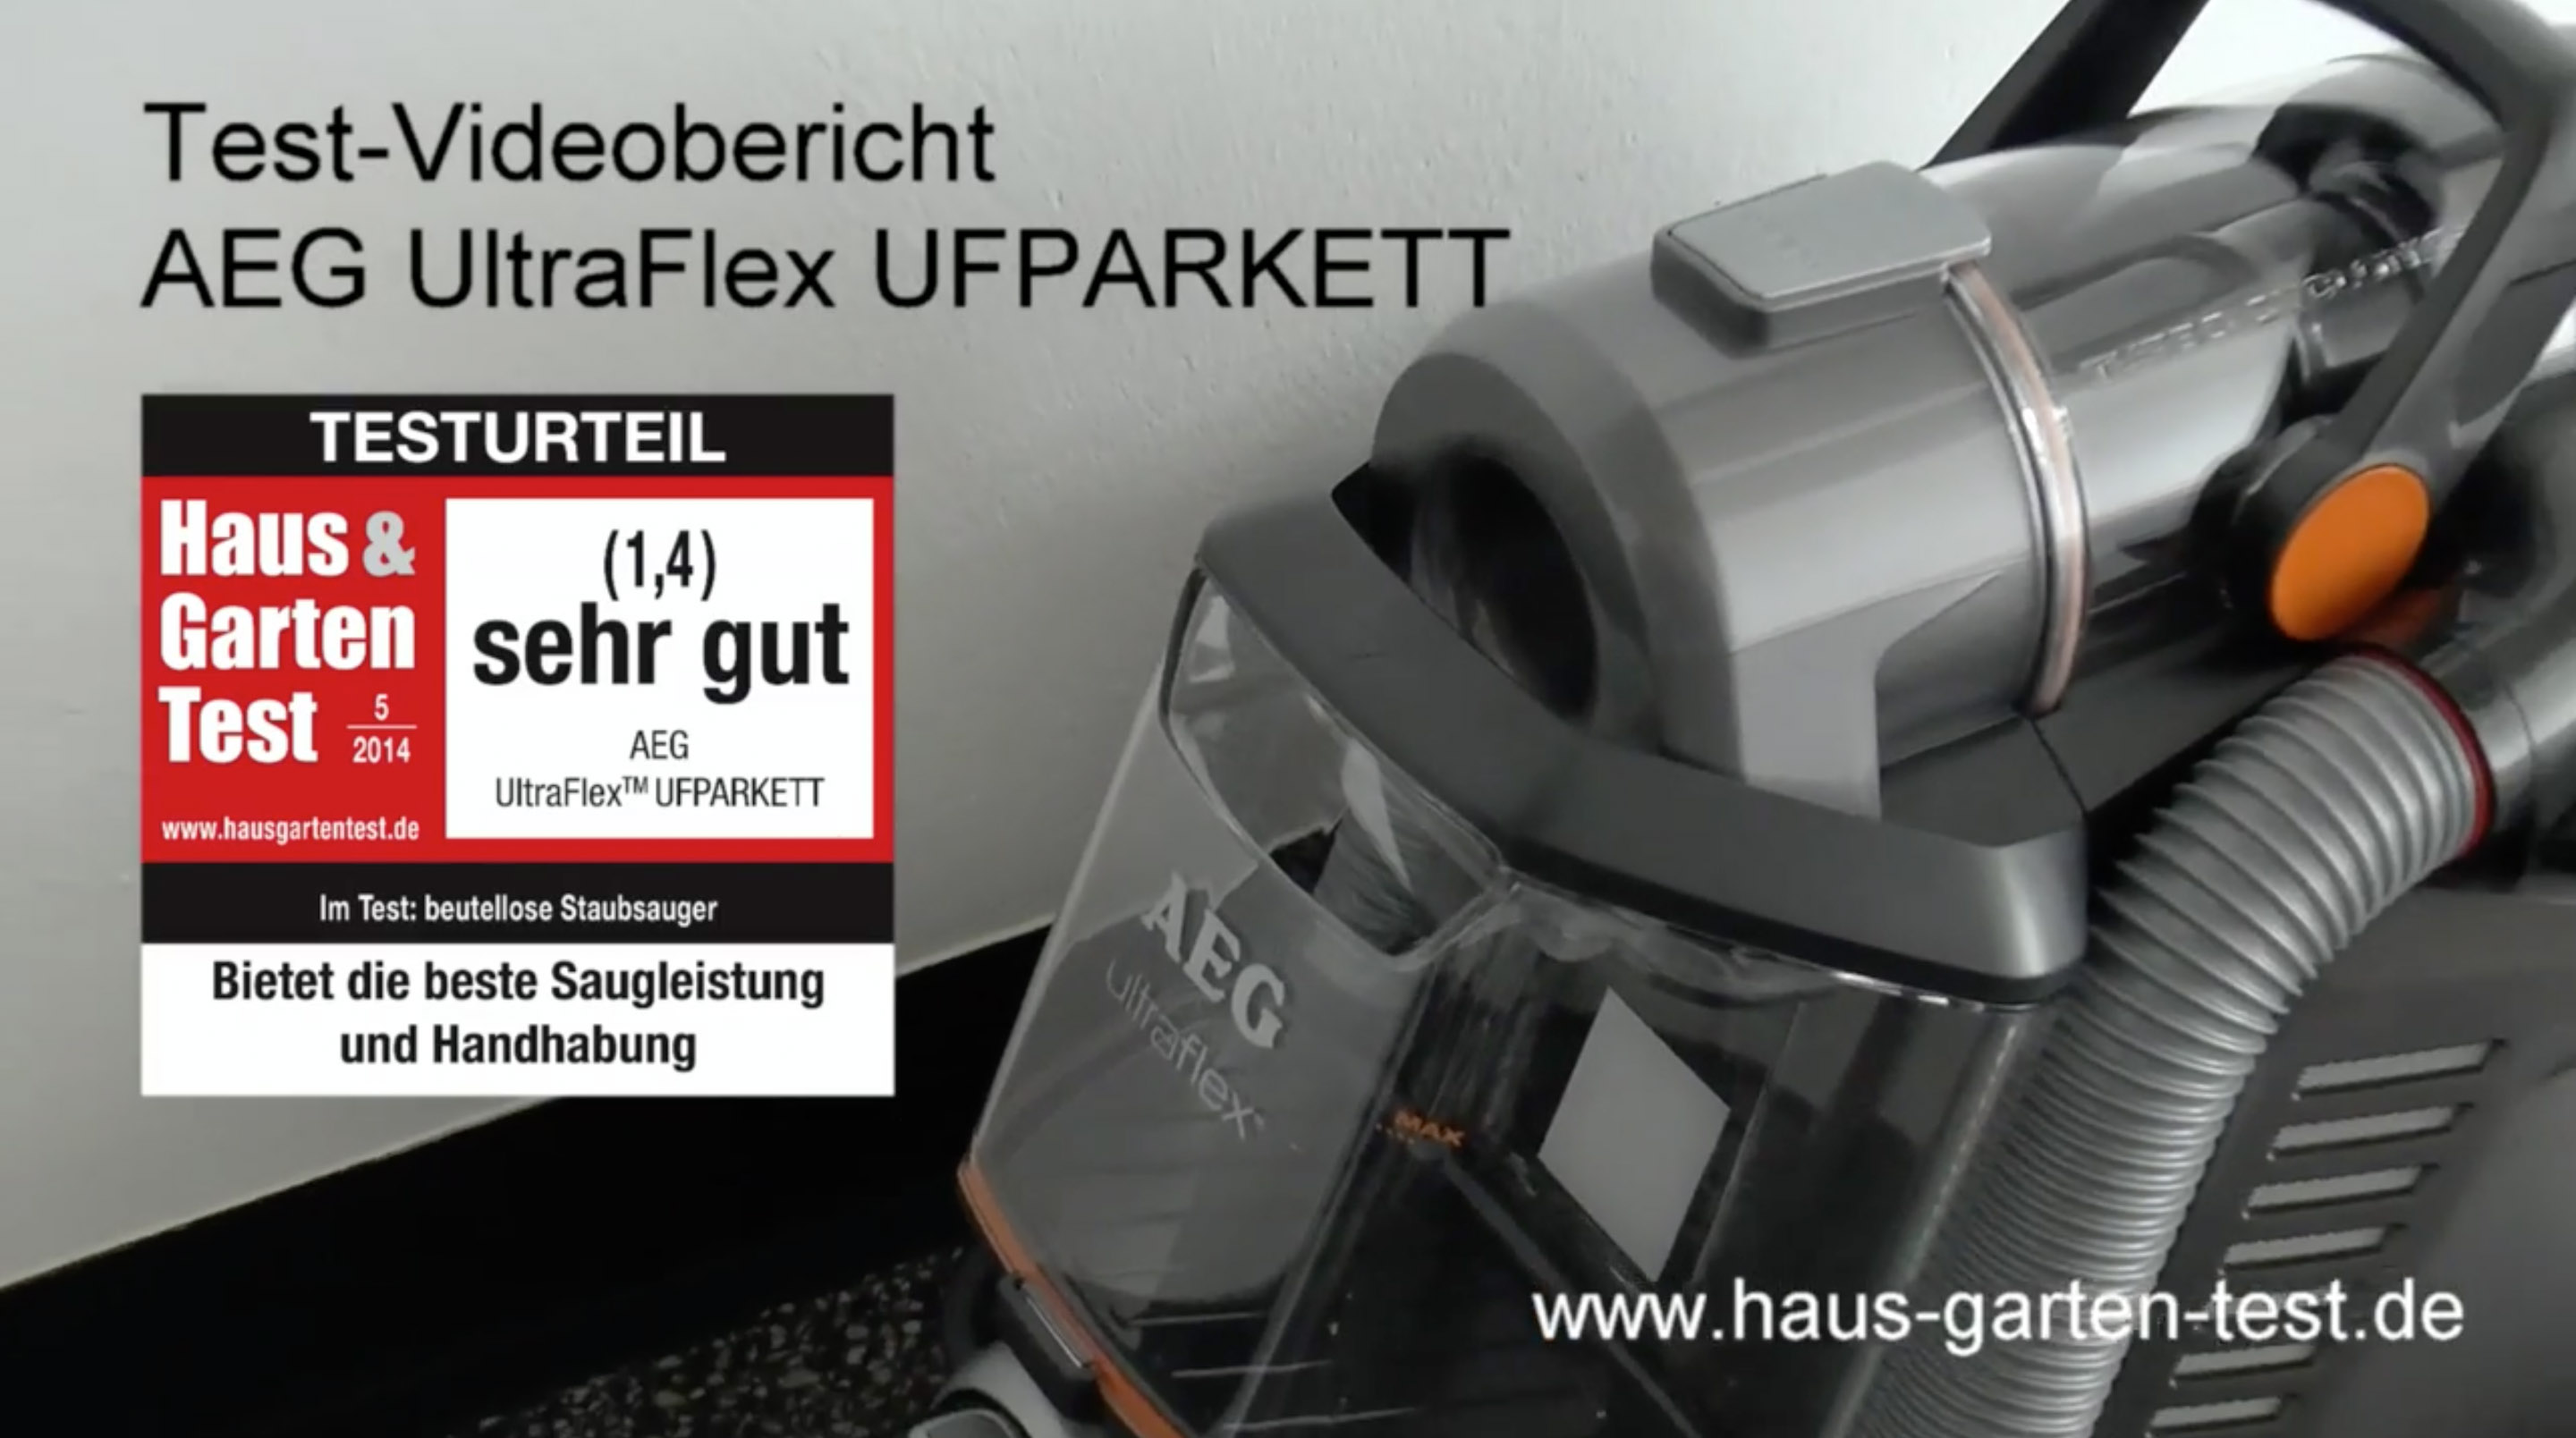 testvideo aeg ultraflex ufparkett haus garten test. Black Bedroom Furniture Sets. Home Design Ideas